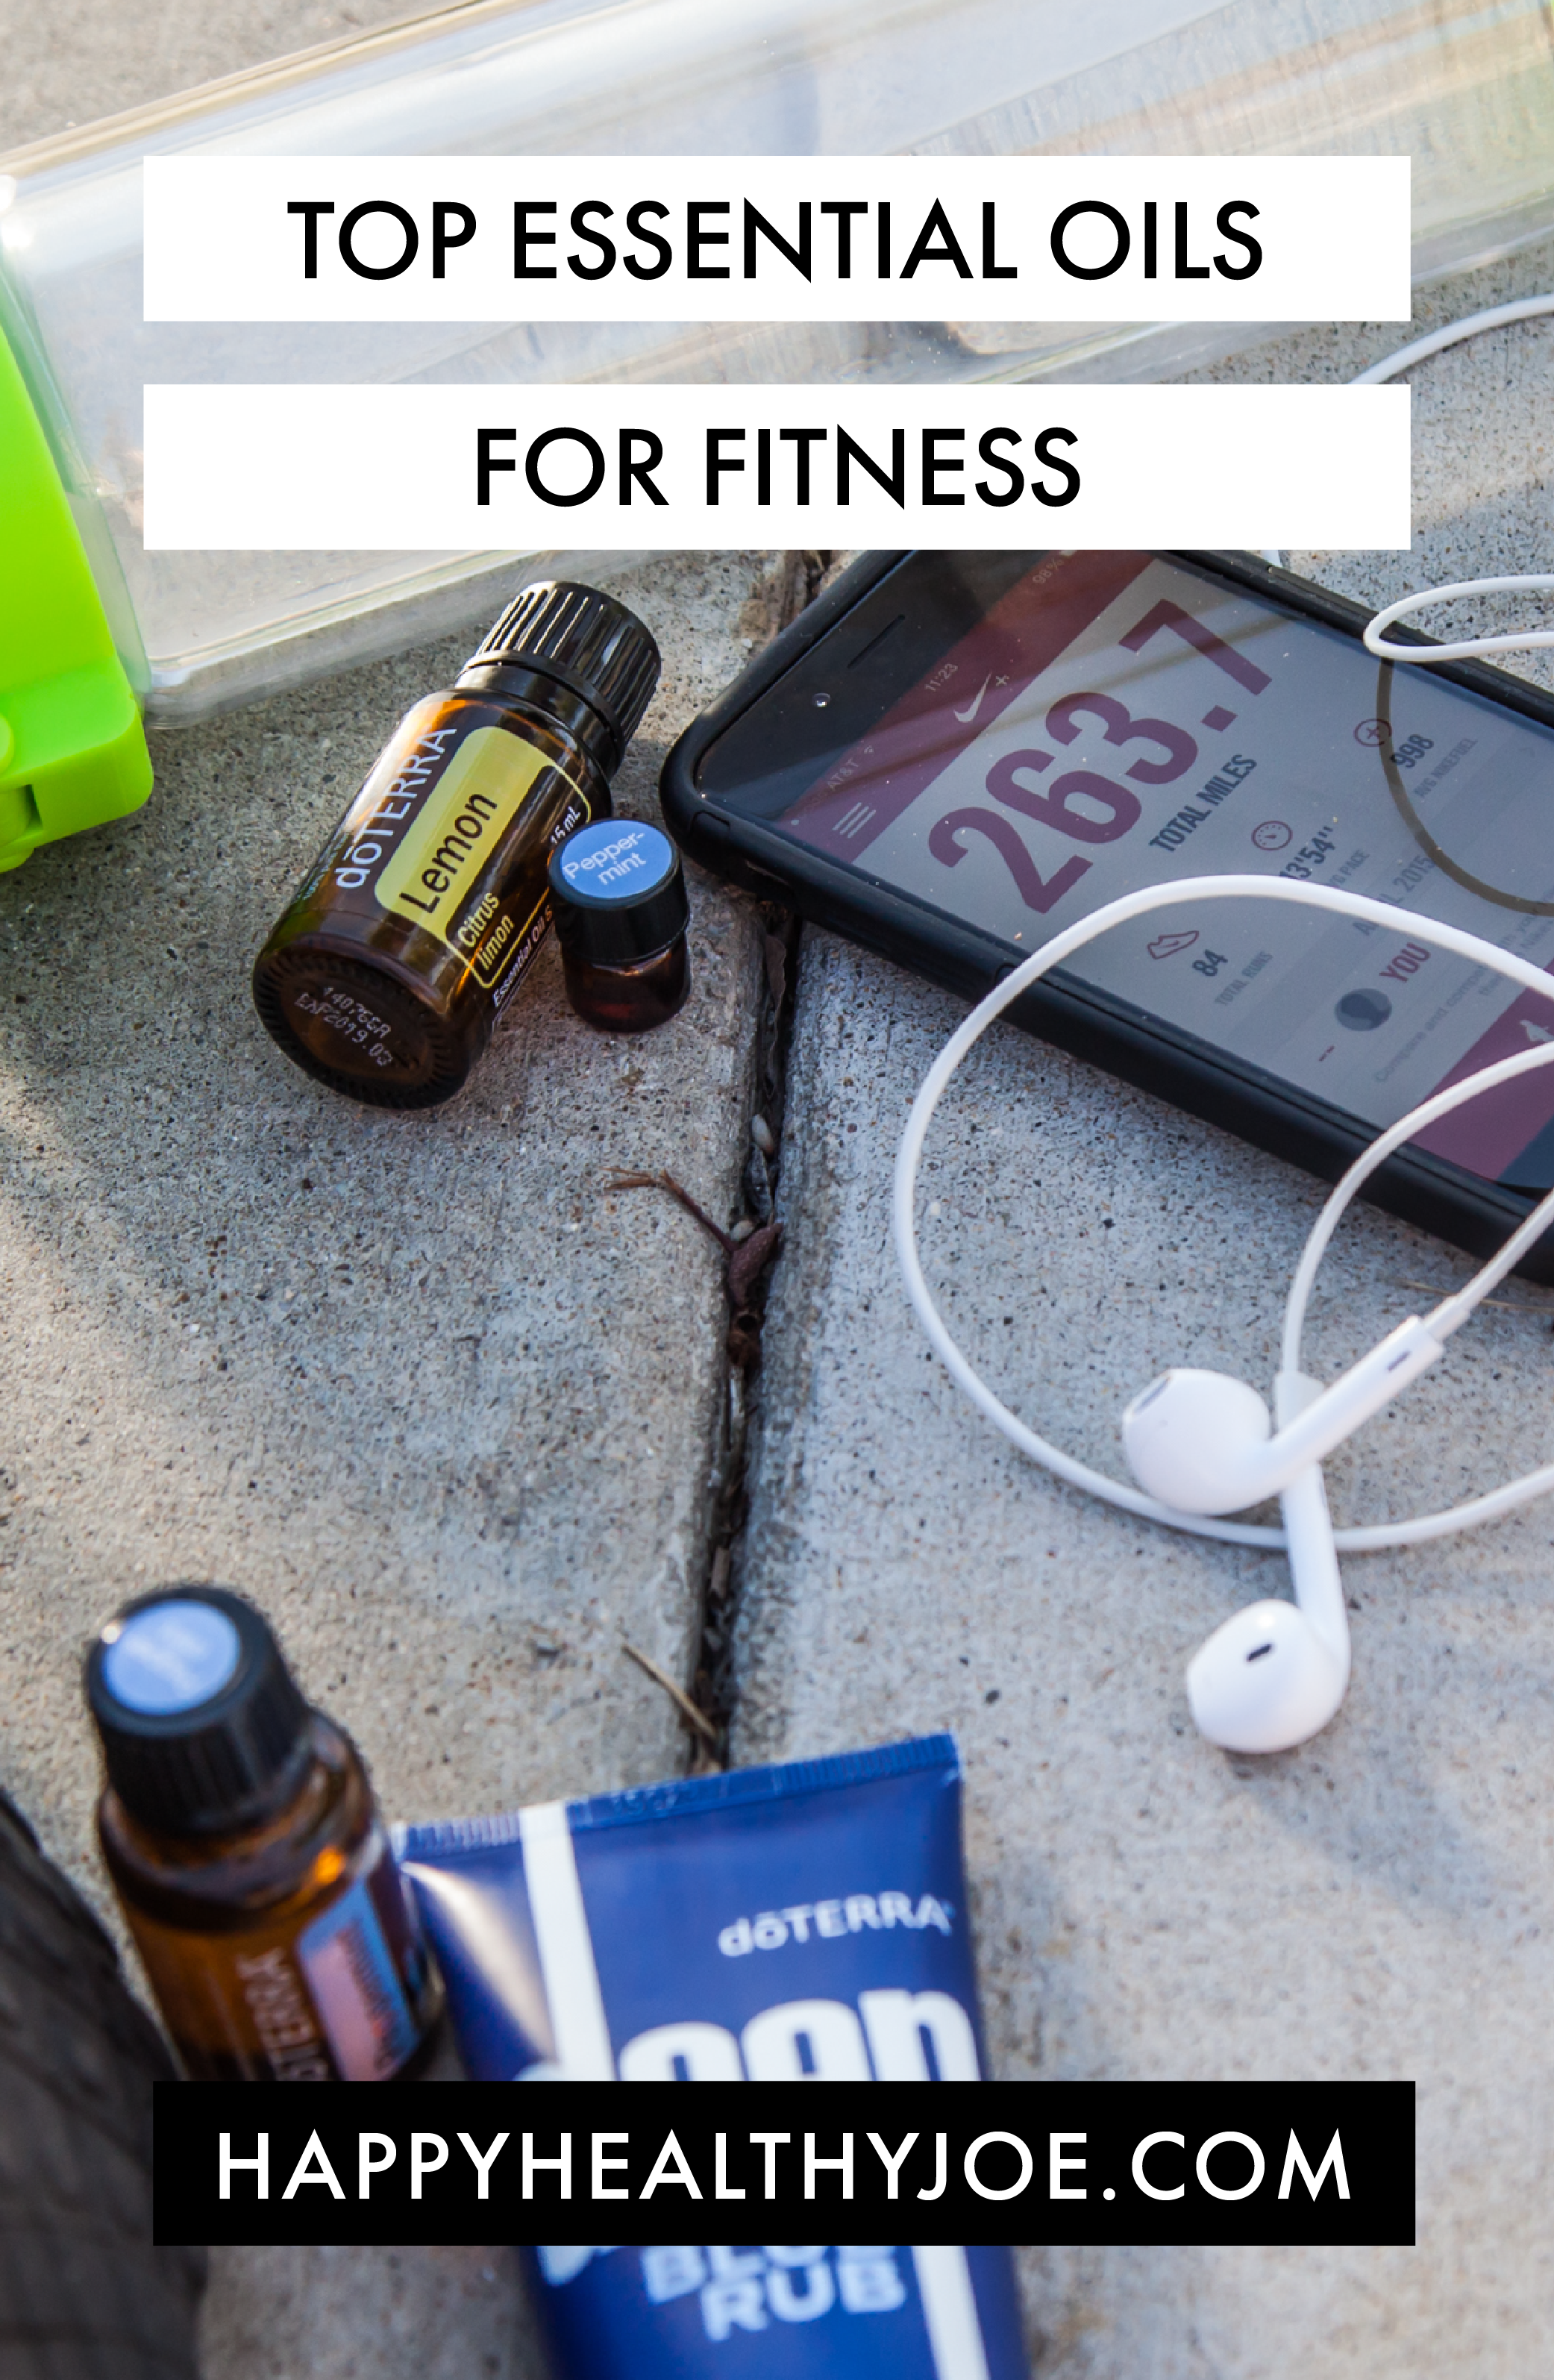 The Top 3 Essential Oils for Fitness